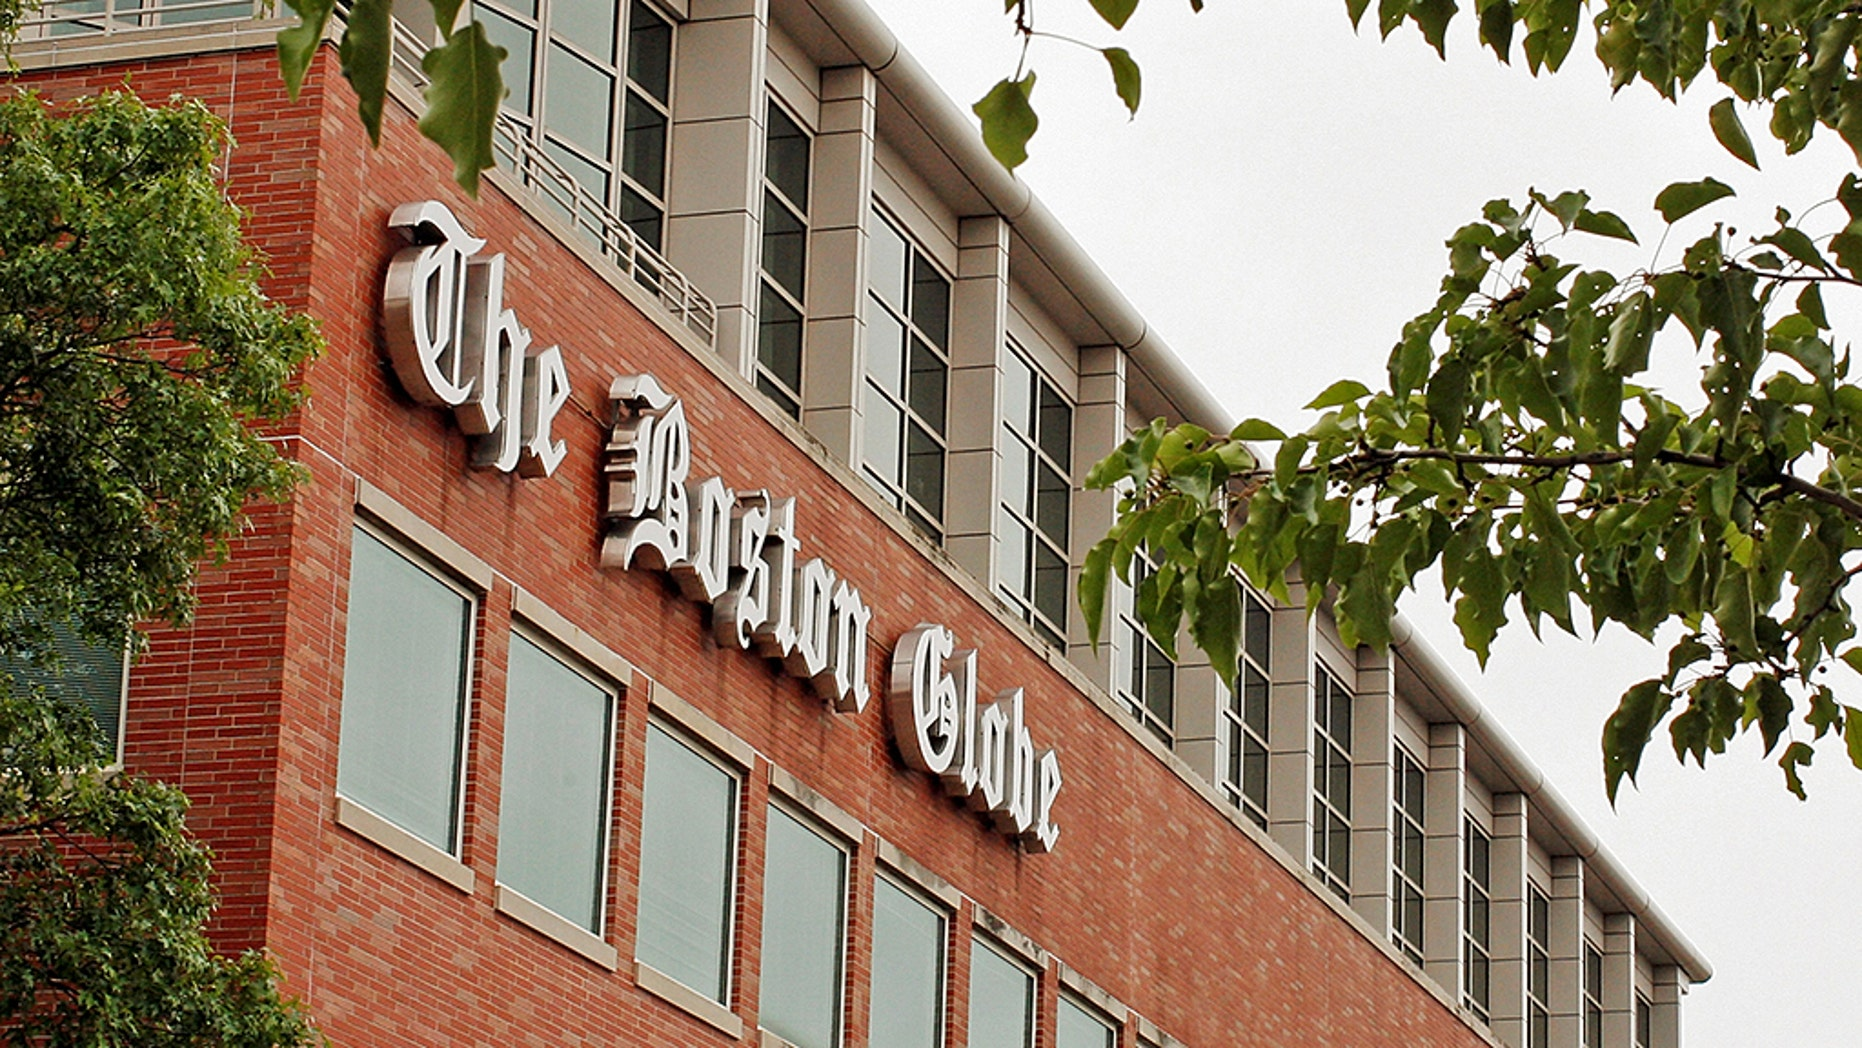 A man was arrested after threatening employees at the Boston Globe several times after the newspaper published an editorial against President Trump's attacks on the media, officials said.